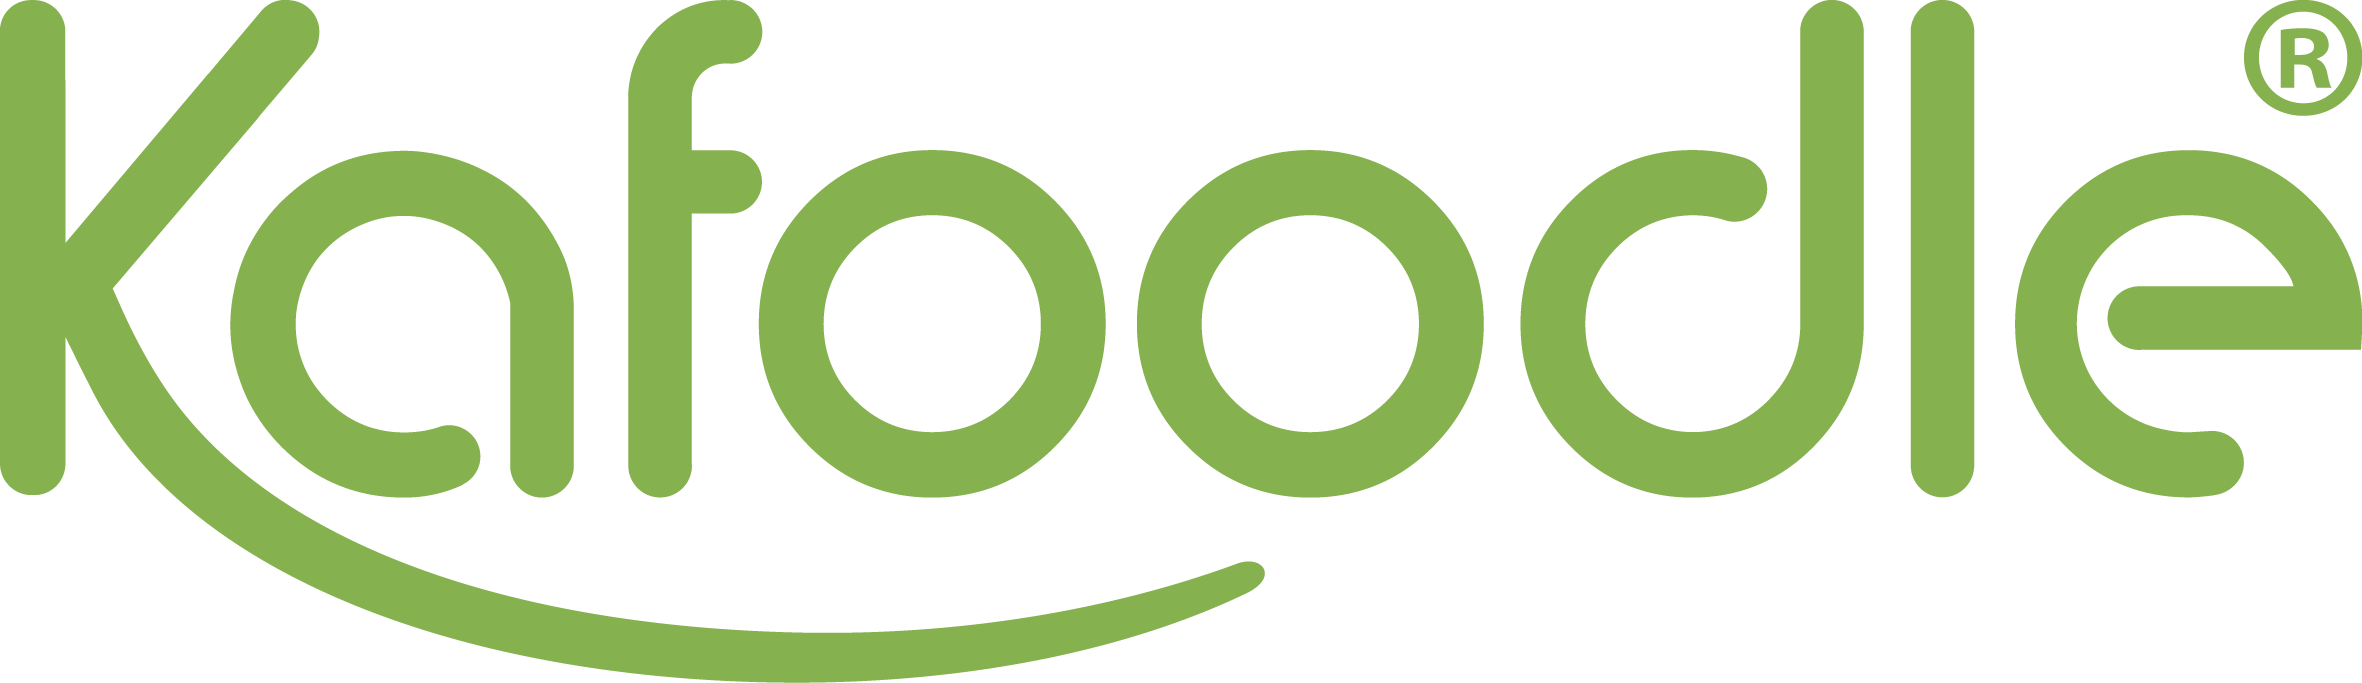 kafoodle-logo-fresh-green-secondary